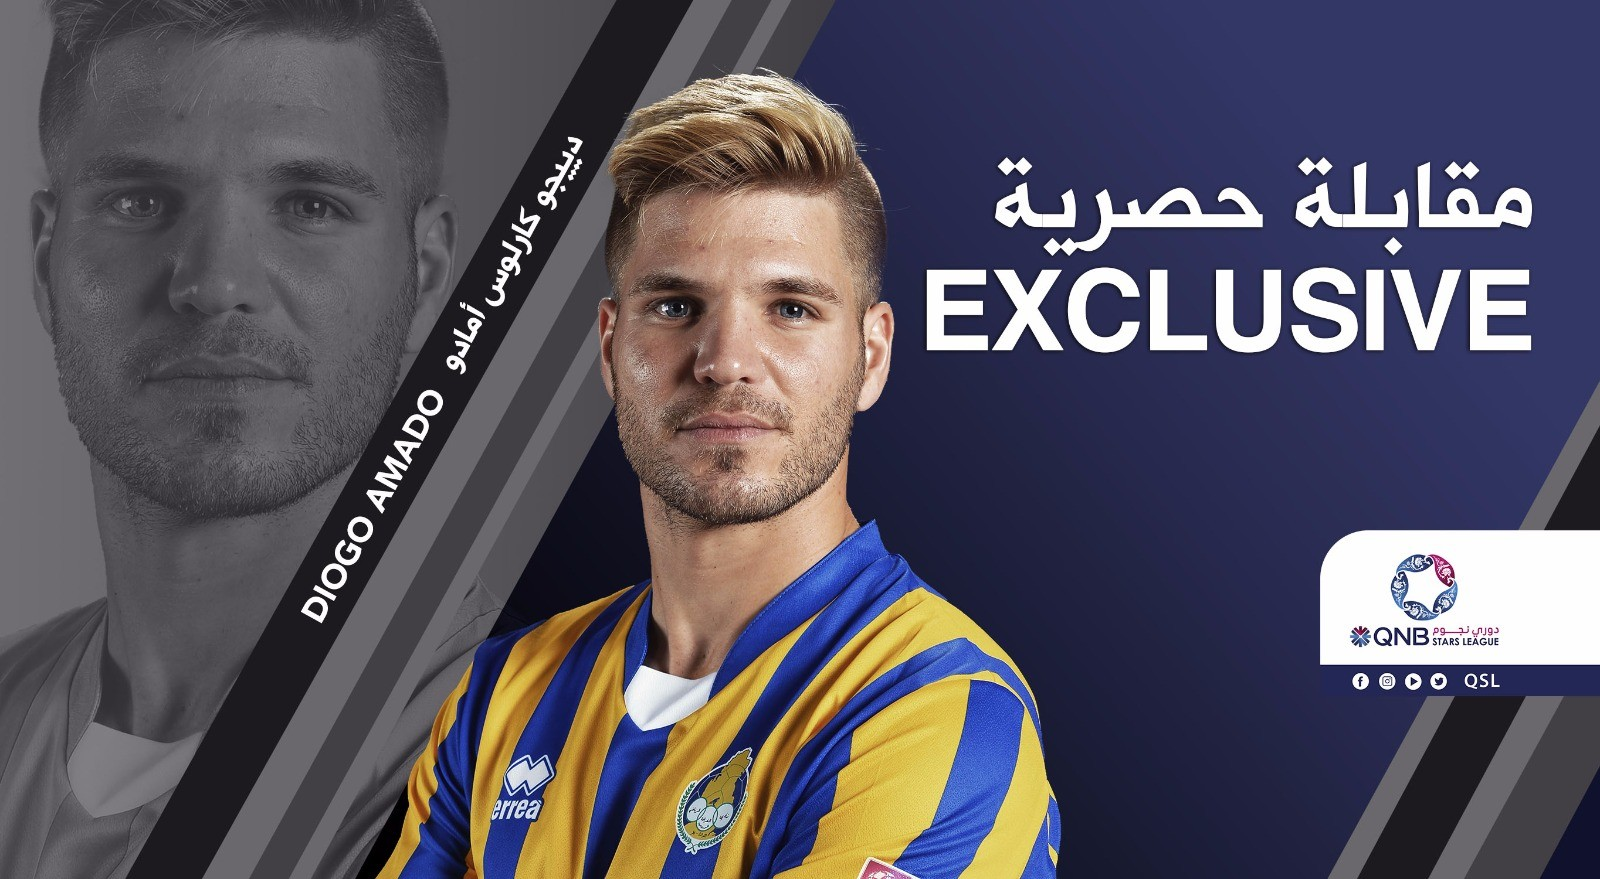 Al Gharafa midfielder Diogo Amado in an Exclusive Interview with QSL Online.